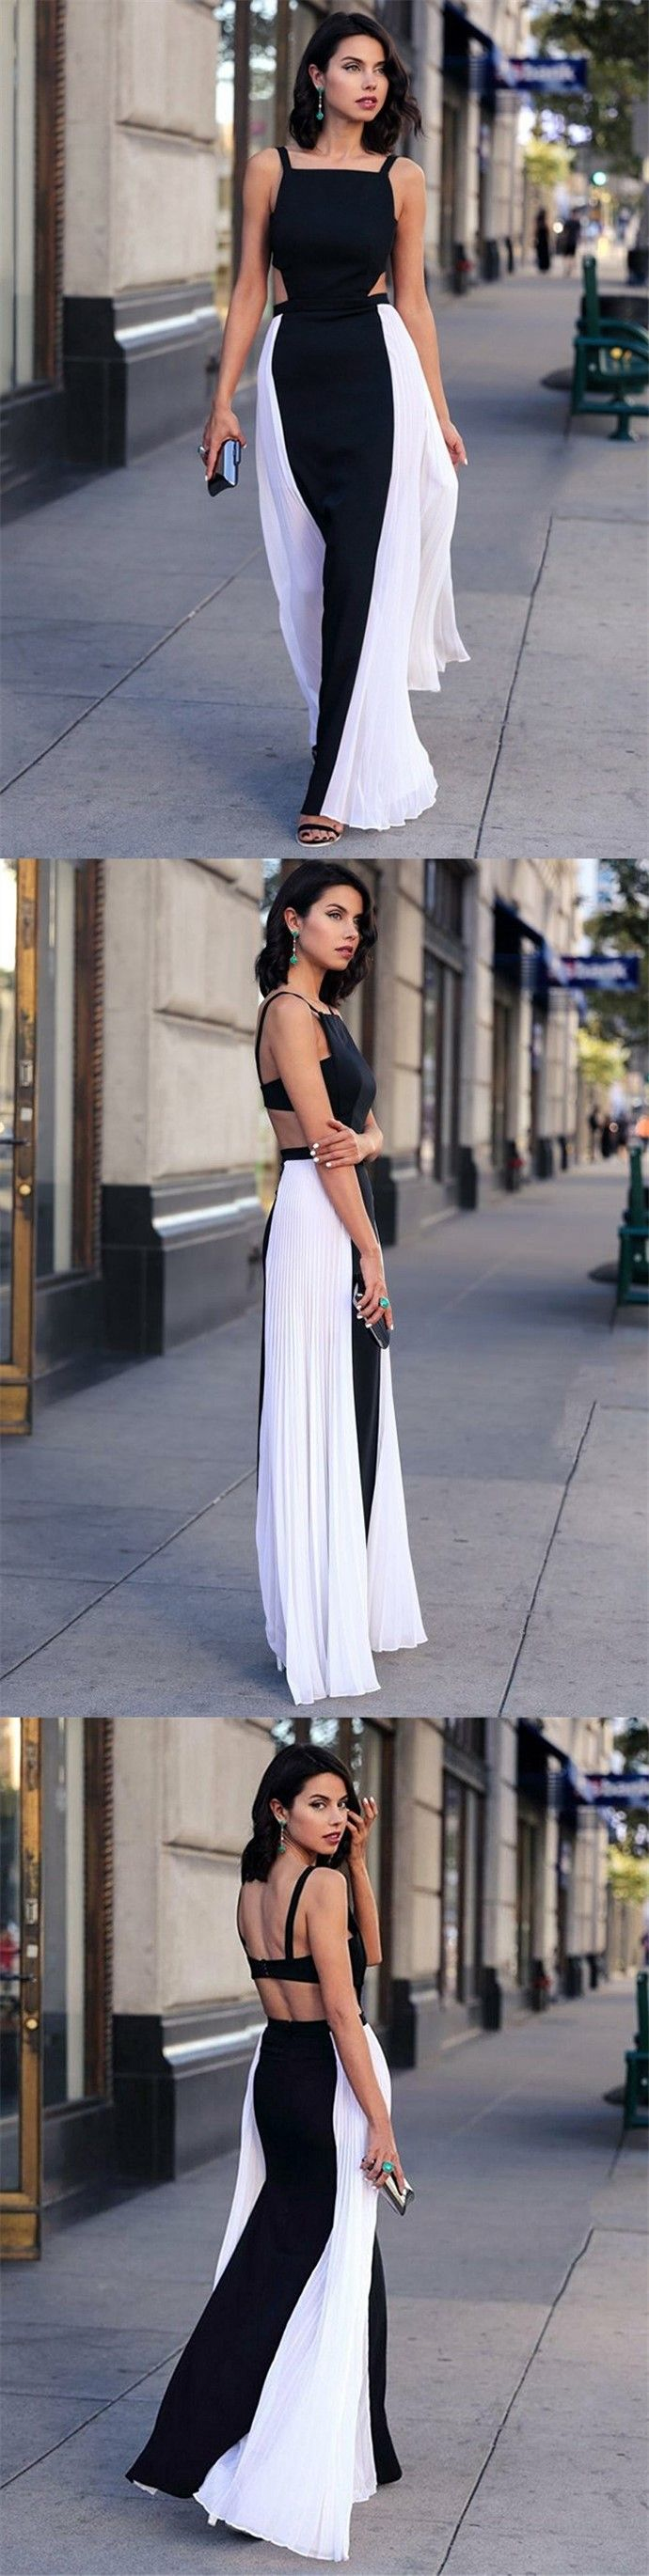 Aline square floorlength black and white chiffon open back prom